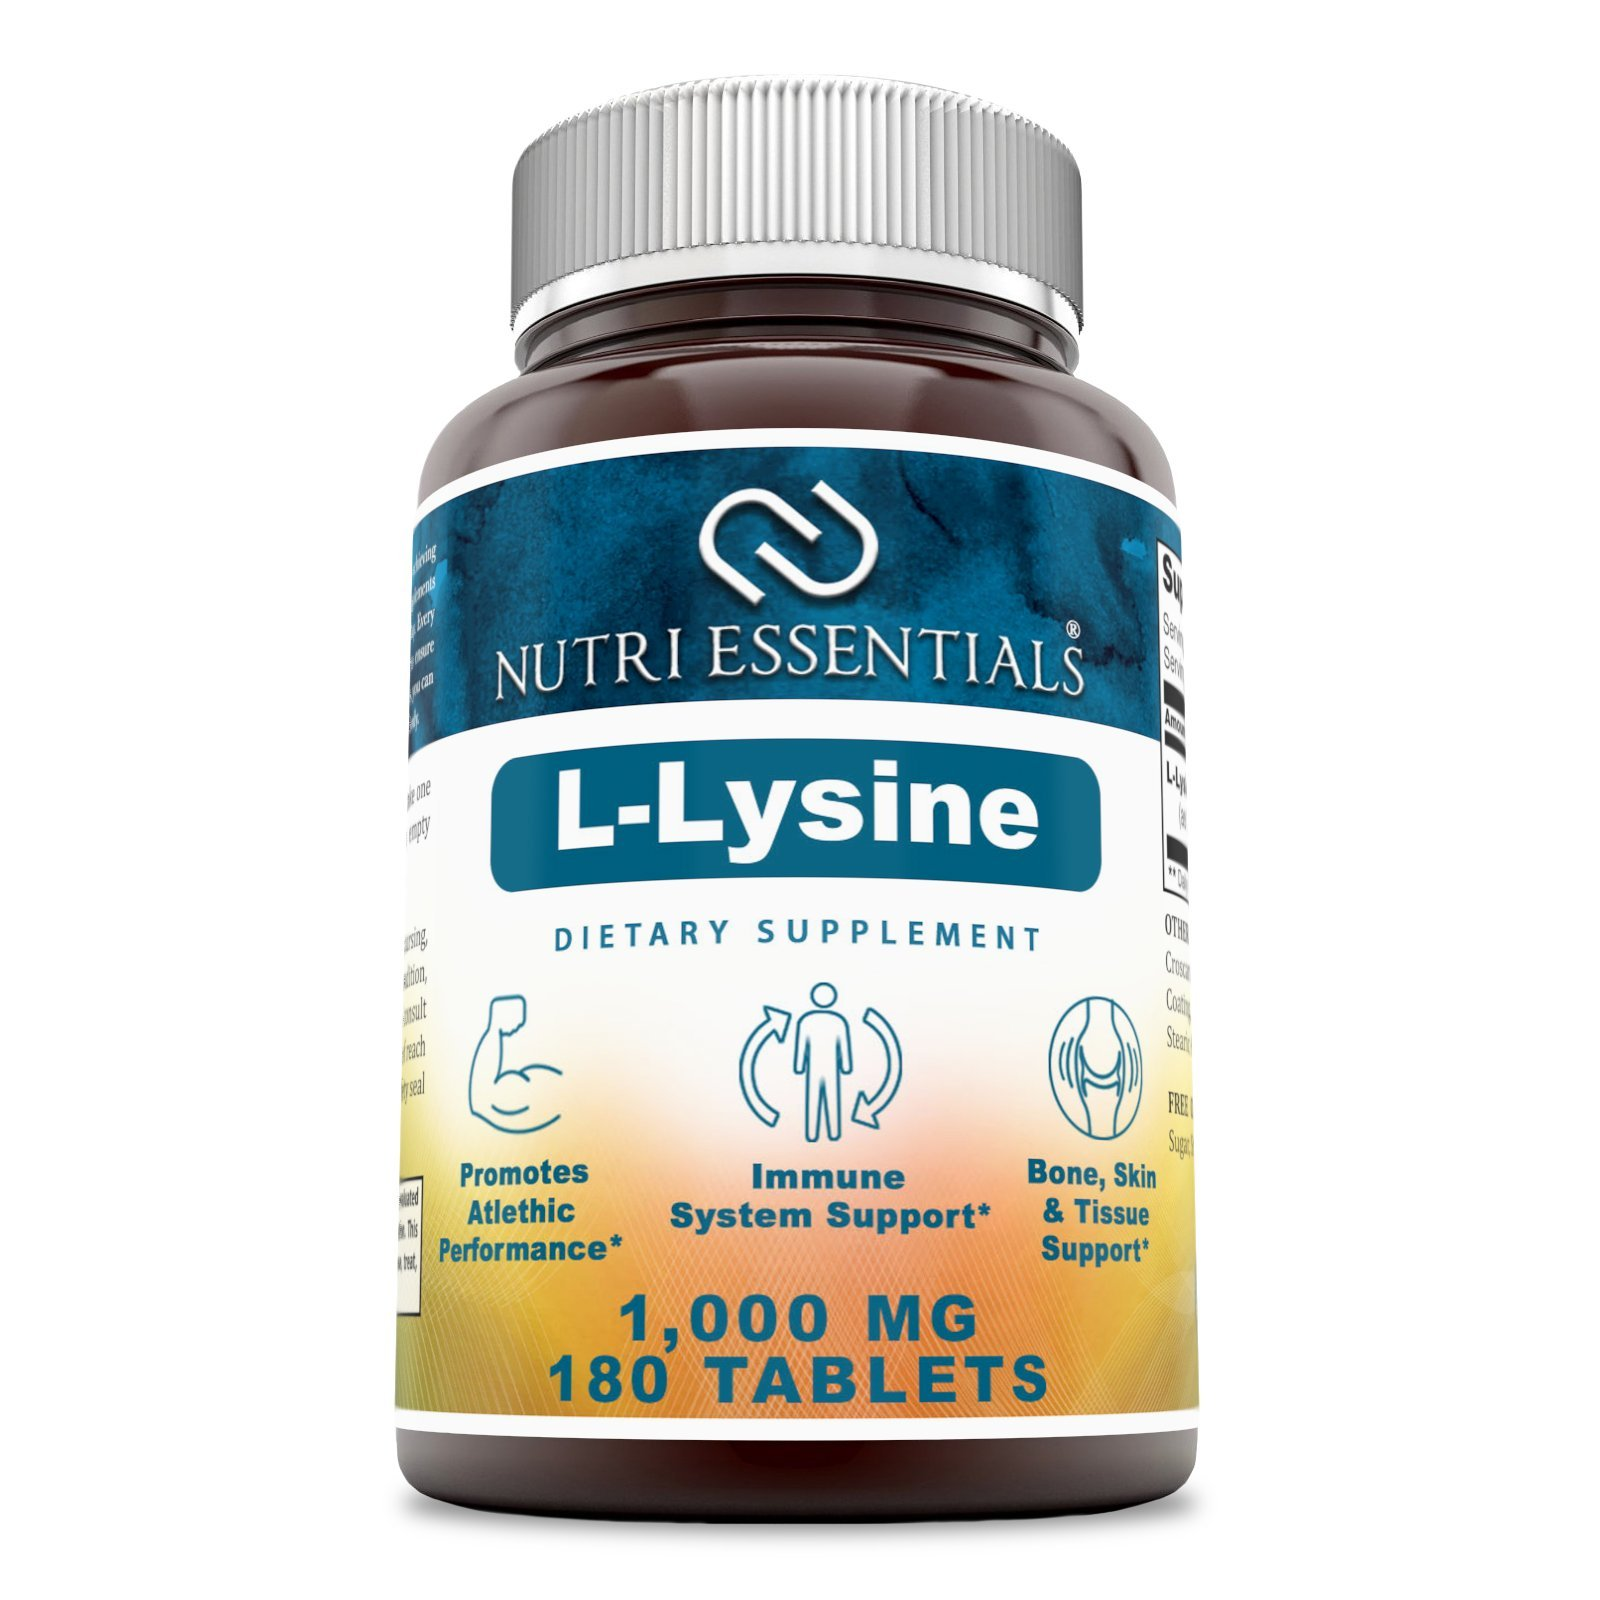 Nutri Essentials L-Lysine - 1000 mg 180 Tablets - Commonly Used for Cold Sores, Immune Support, Respiratory Health & More by Nutri Essentials